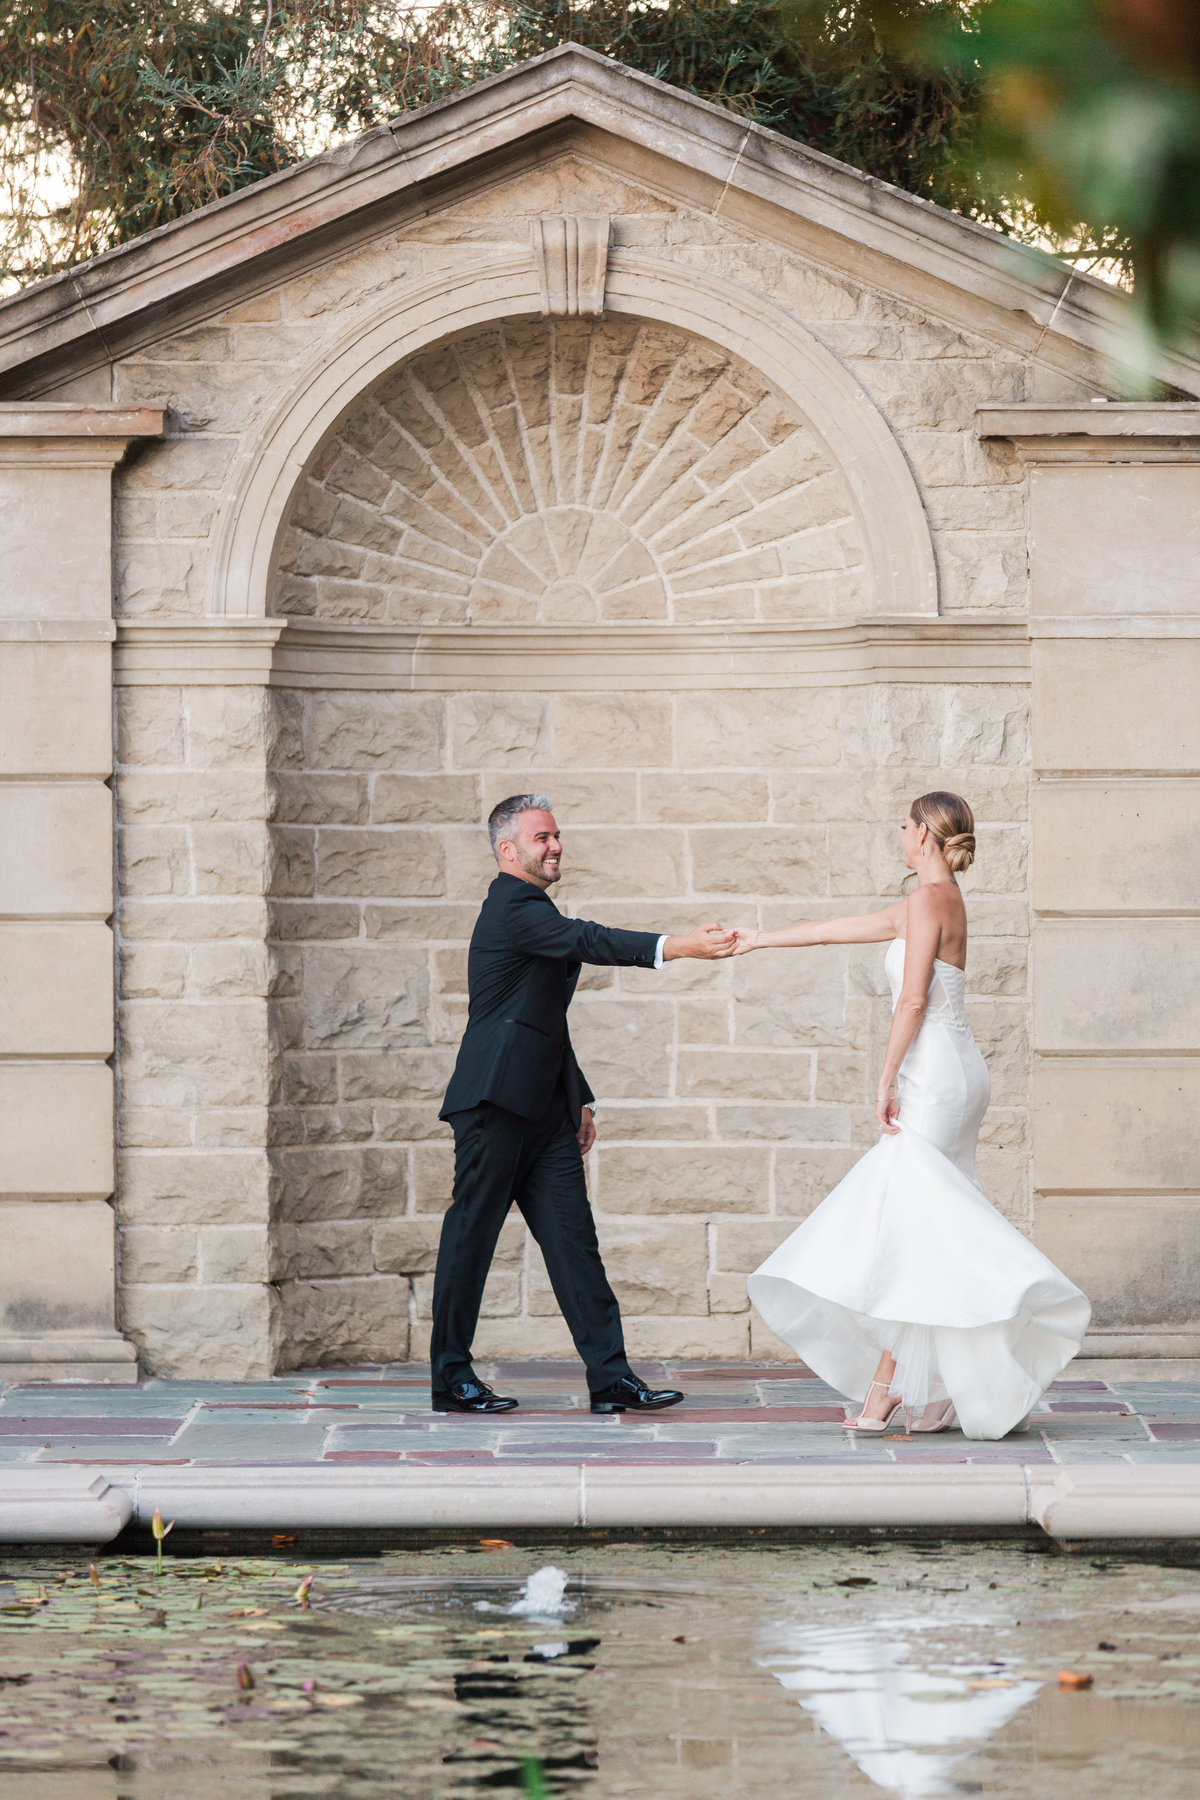 Greystone_Mansion_Intimate_Black_Tie_Wedding_Valorie_Darling_Photography - 176 of 206